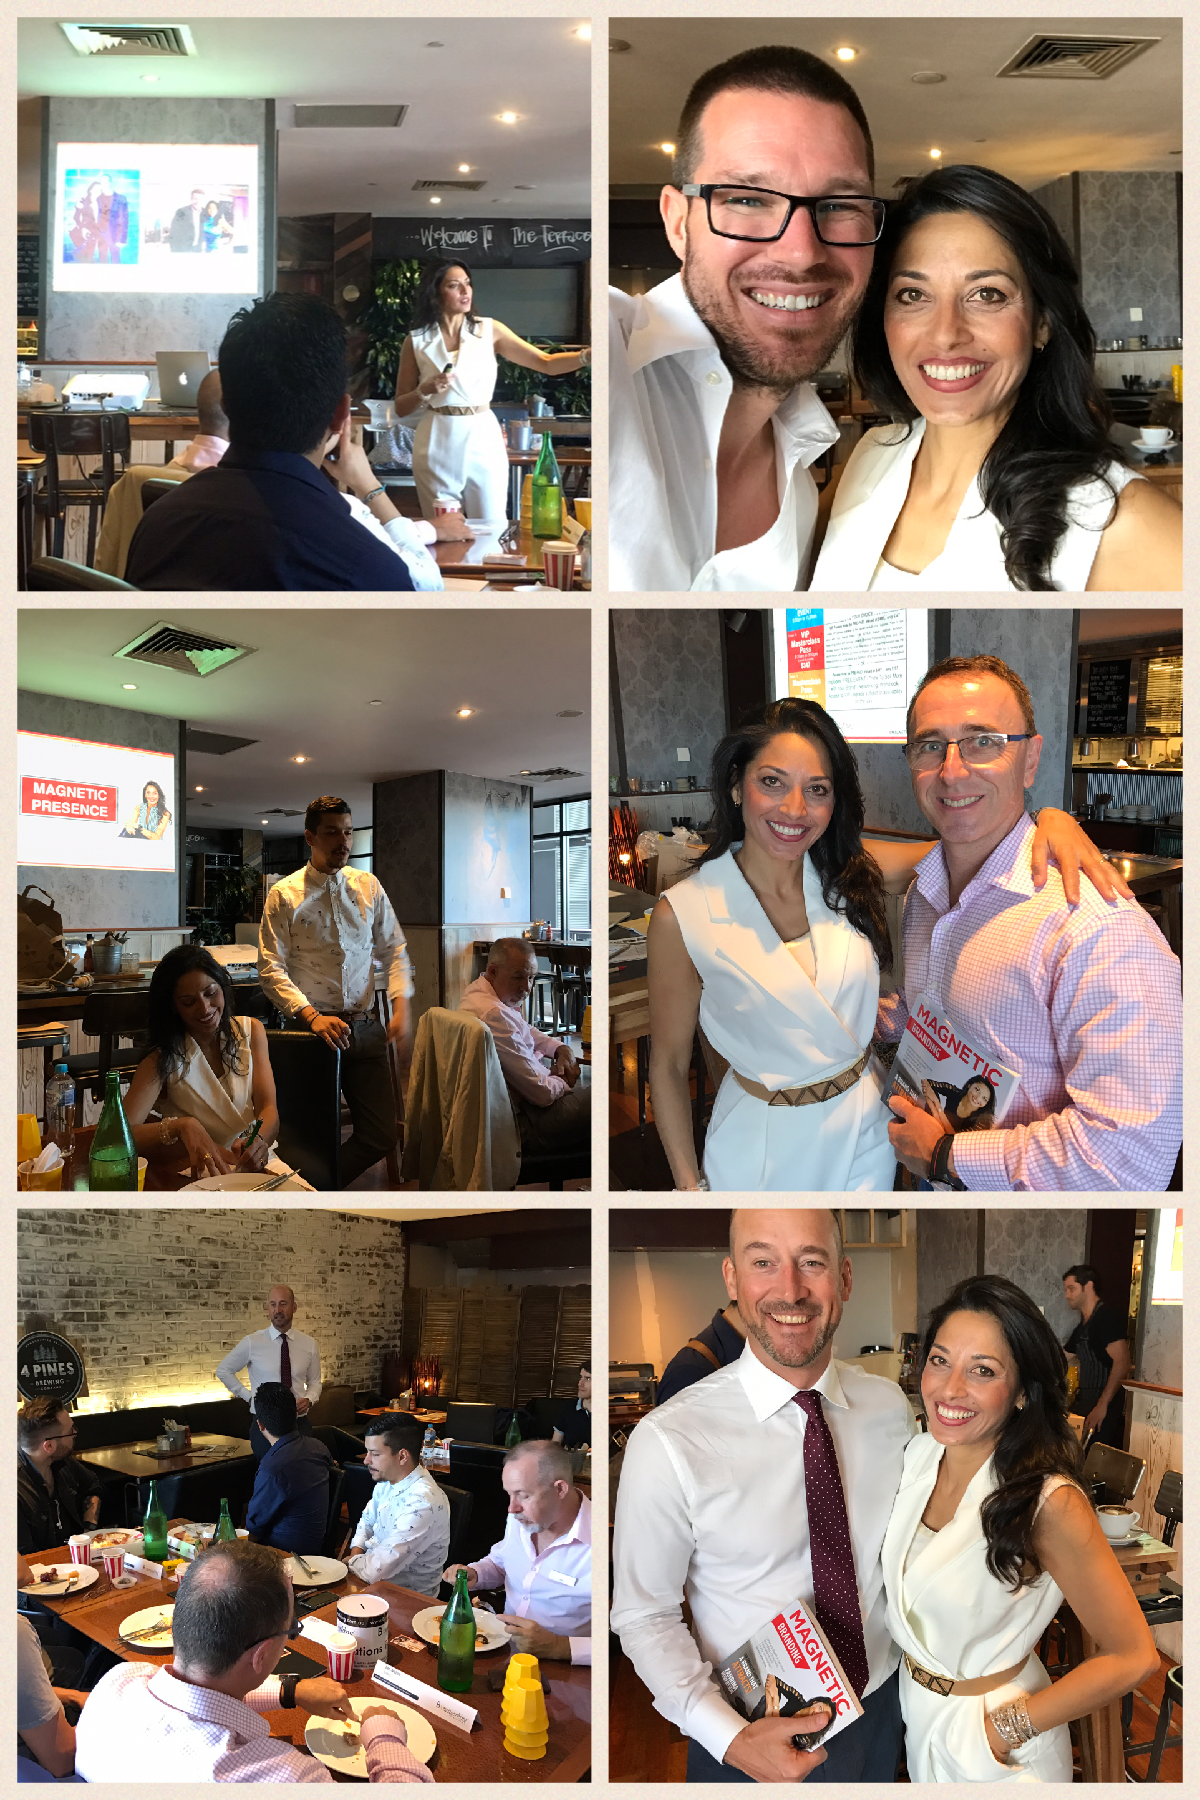 BxNetworking Sydney CBD